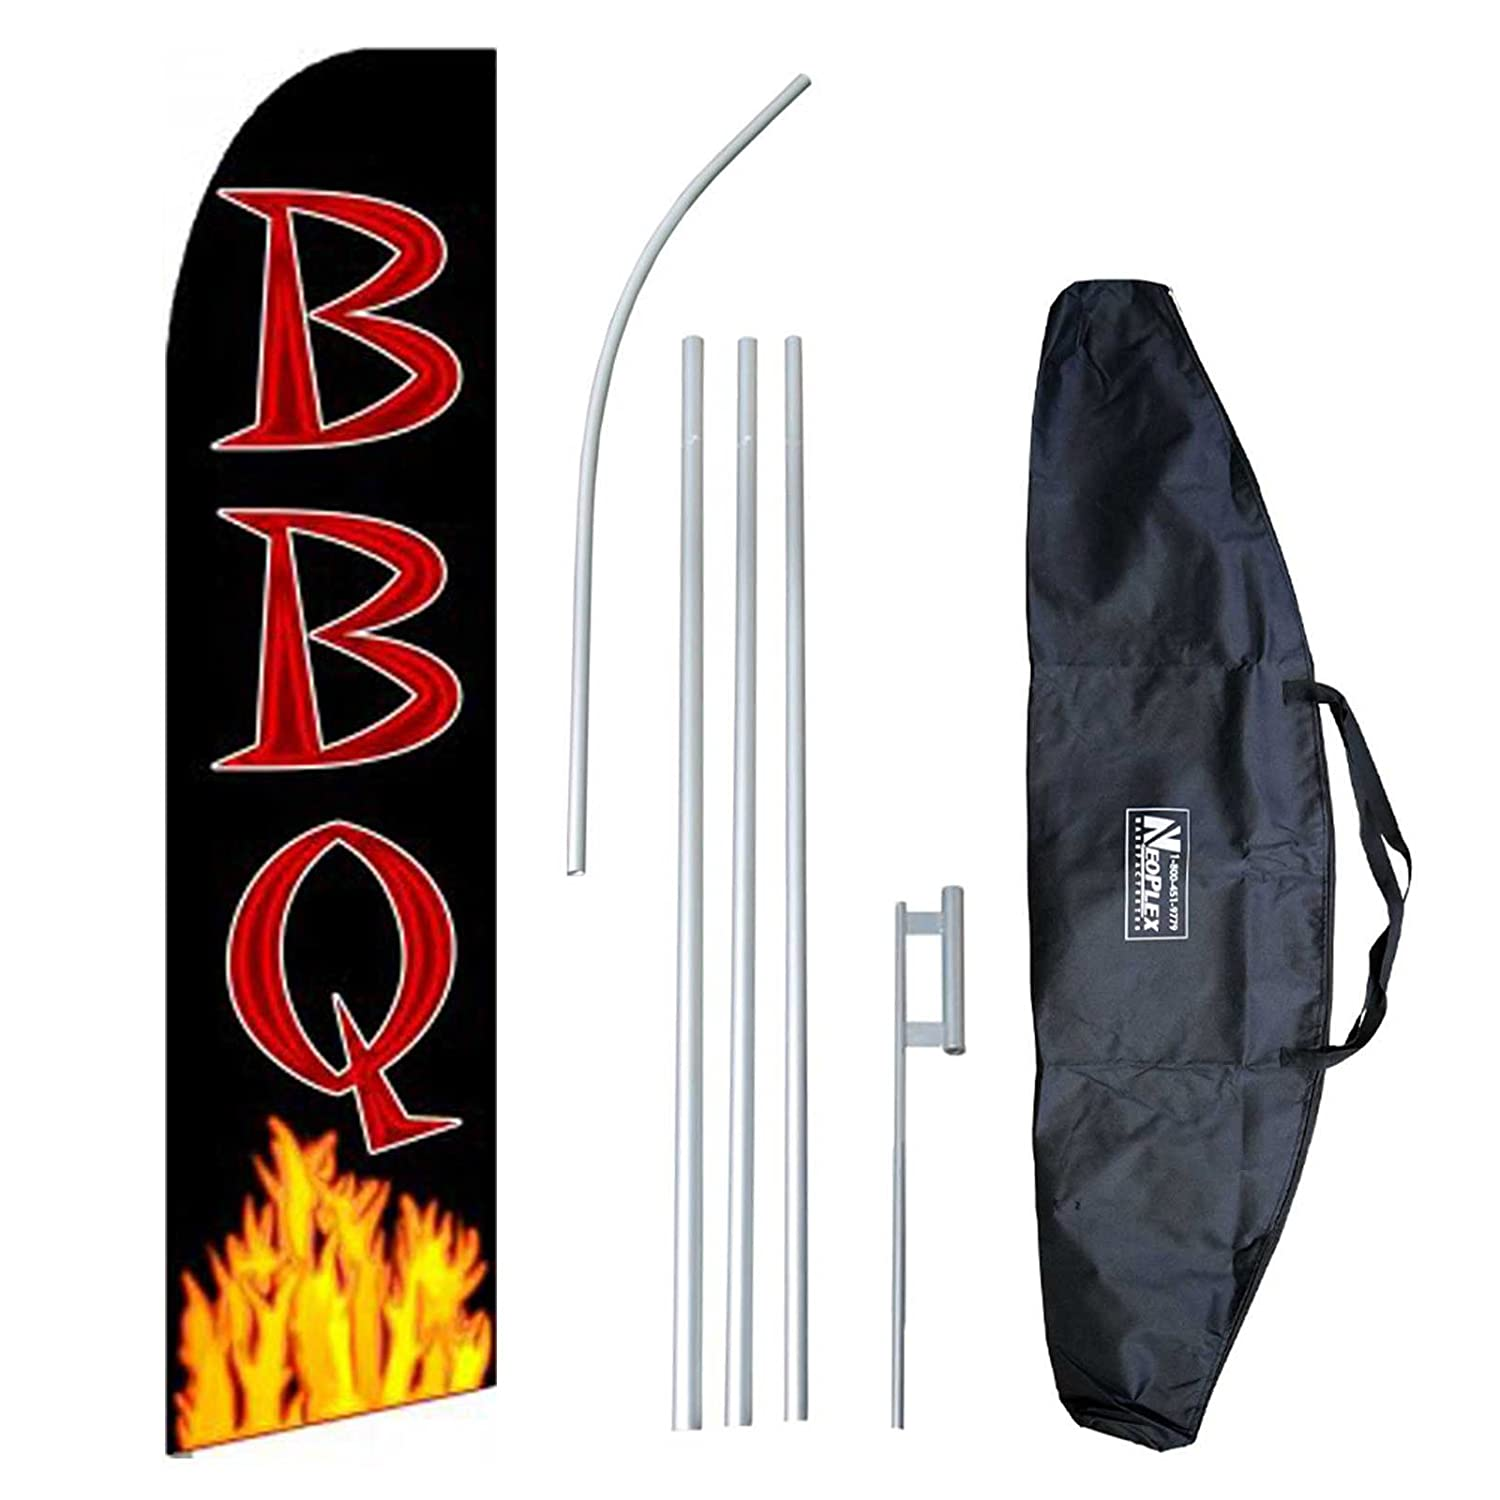 """BBQ (Extra Wide)"" 12-foot Swooper Feather Flag and Case Complete Set...includes 12-foot Flag, 15-foot Pole, Ground Spike, and Carrying/Storage Case"